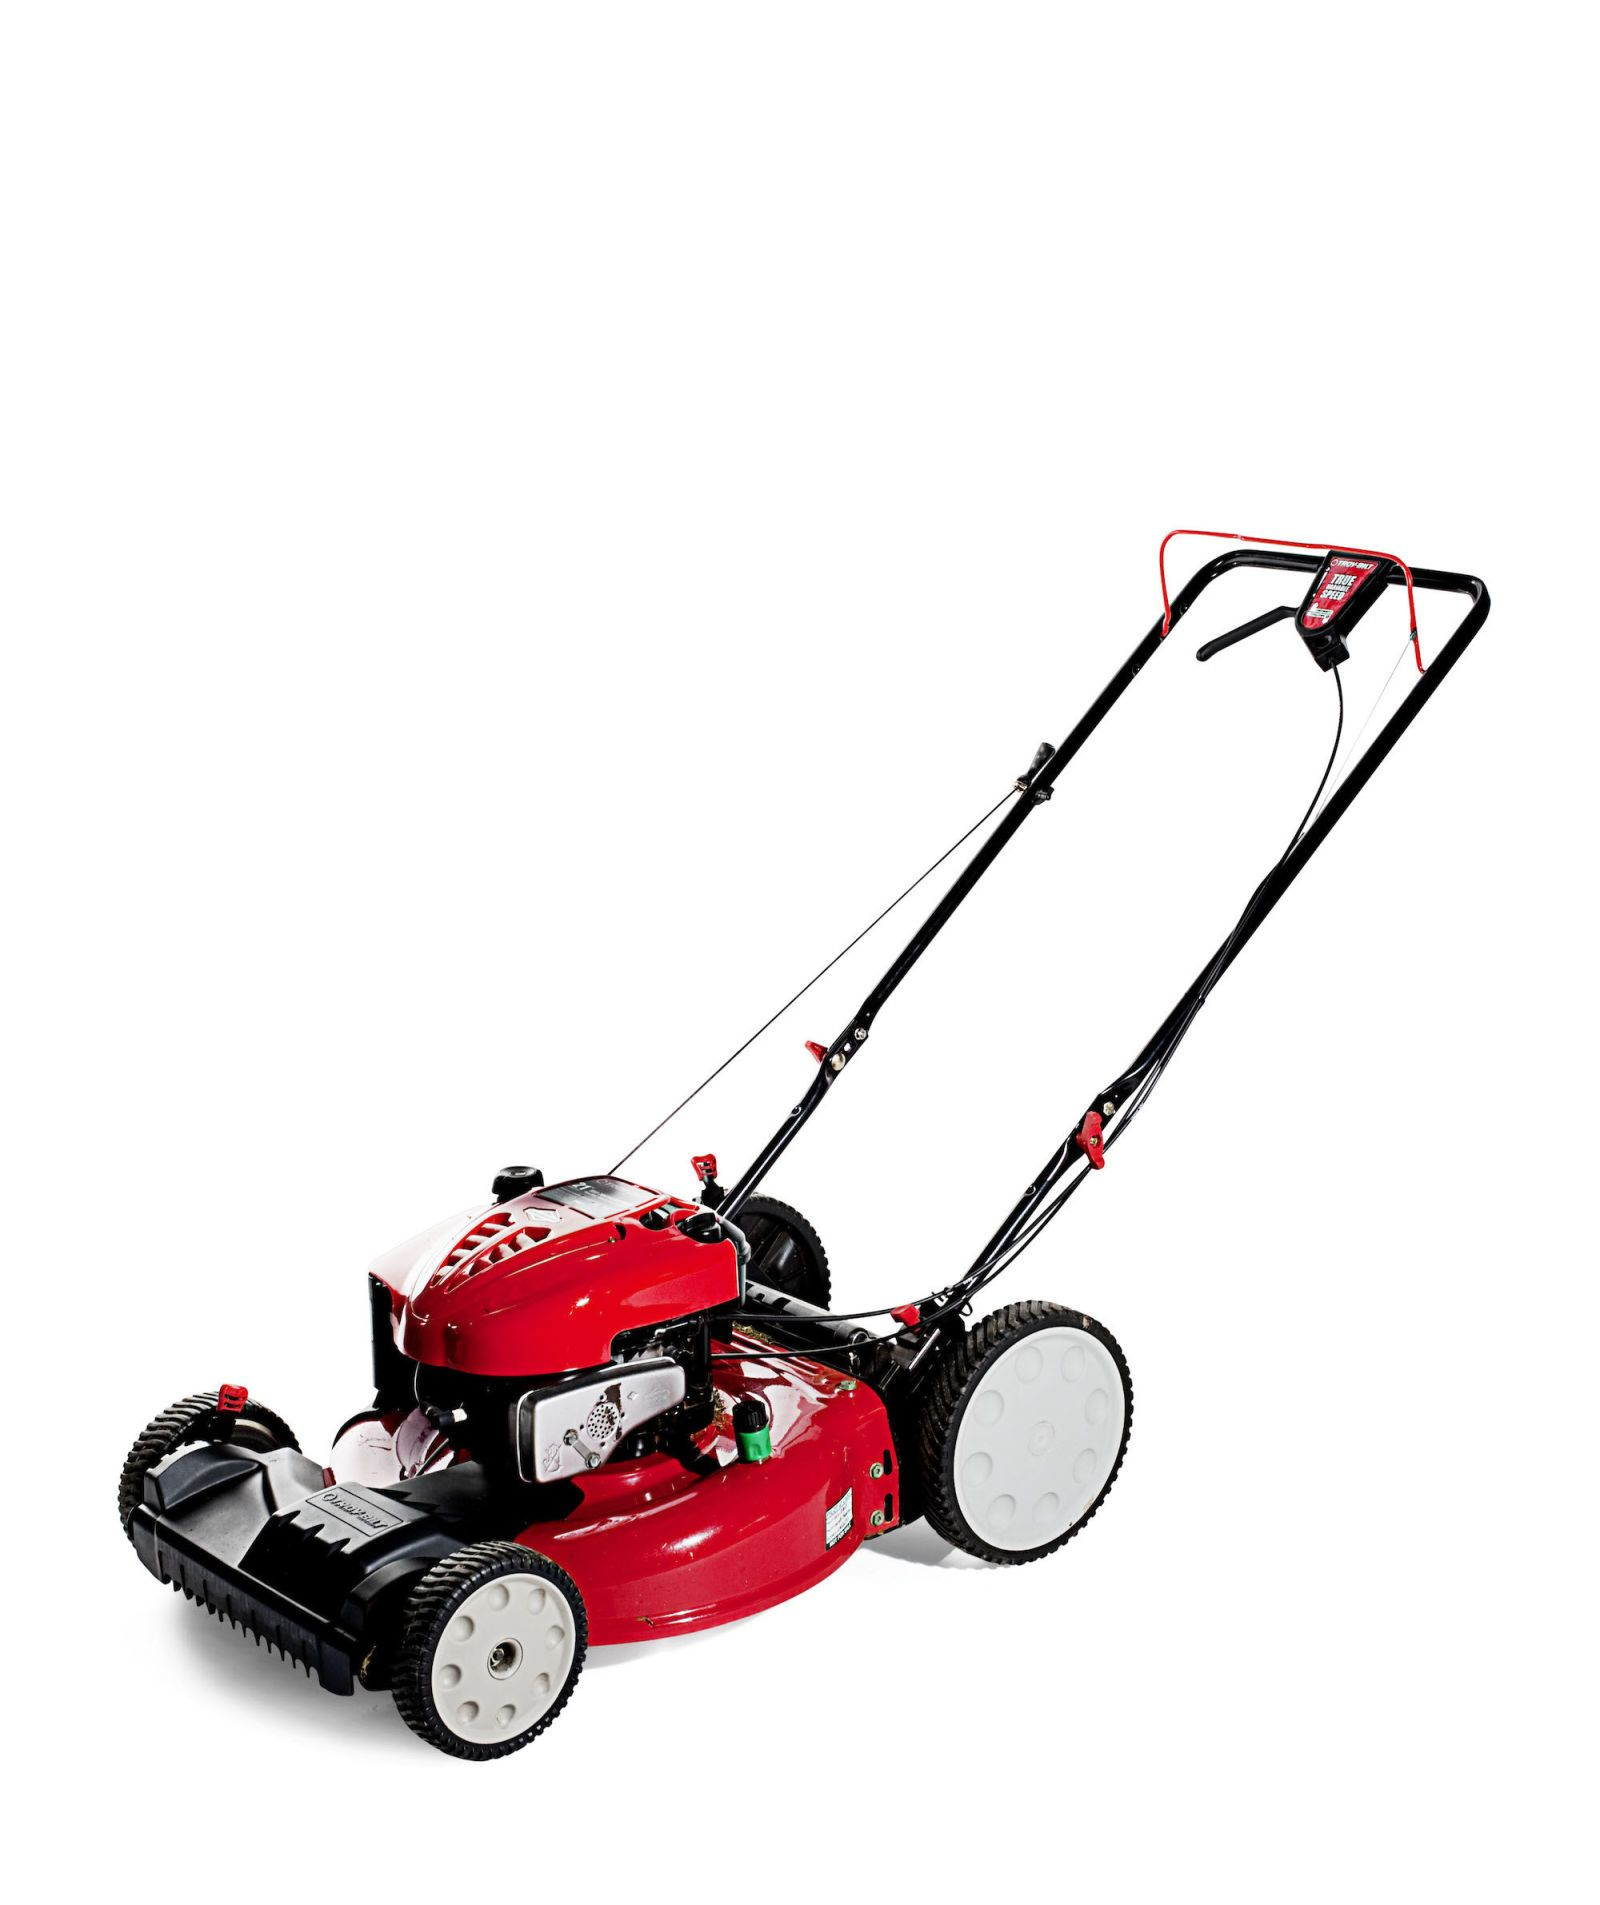 The Best Electric And Gas Mowers For Any Type Of Yard Best Lawn Mower Lawn Mower Cordless Lawn Mower